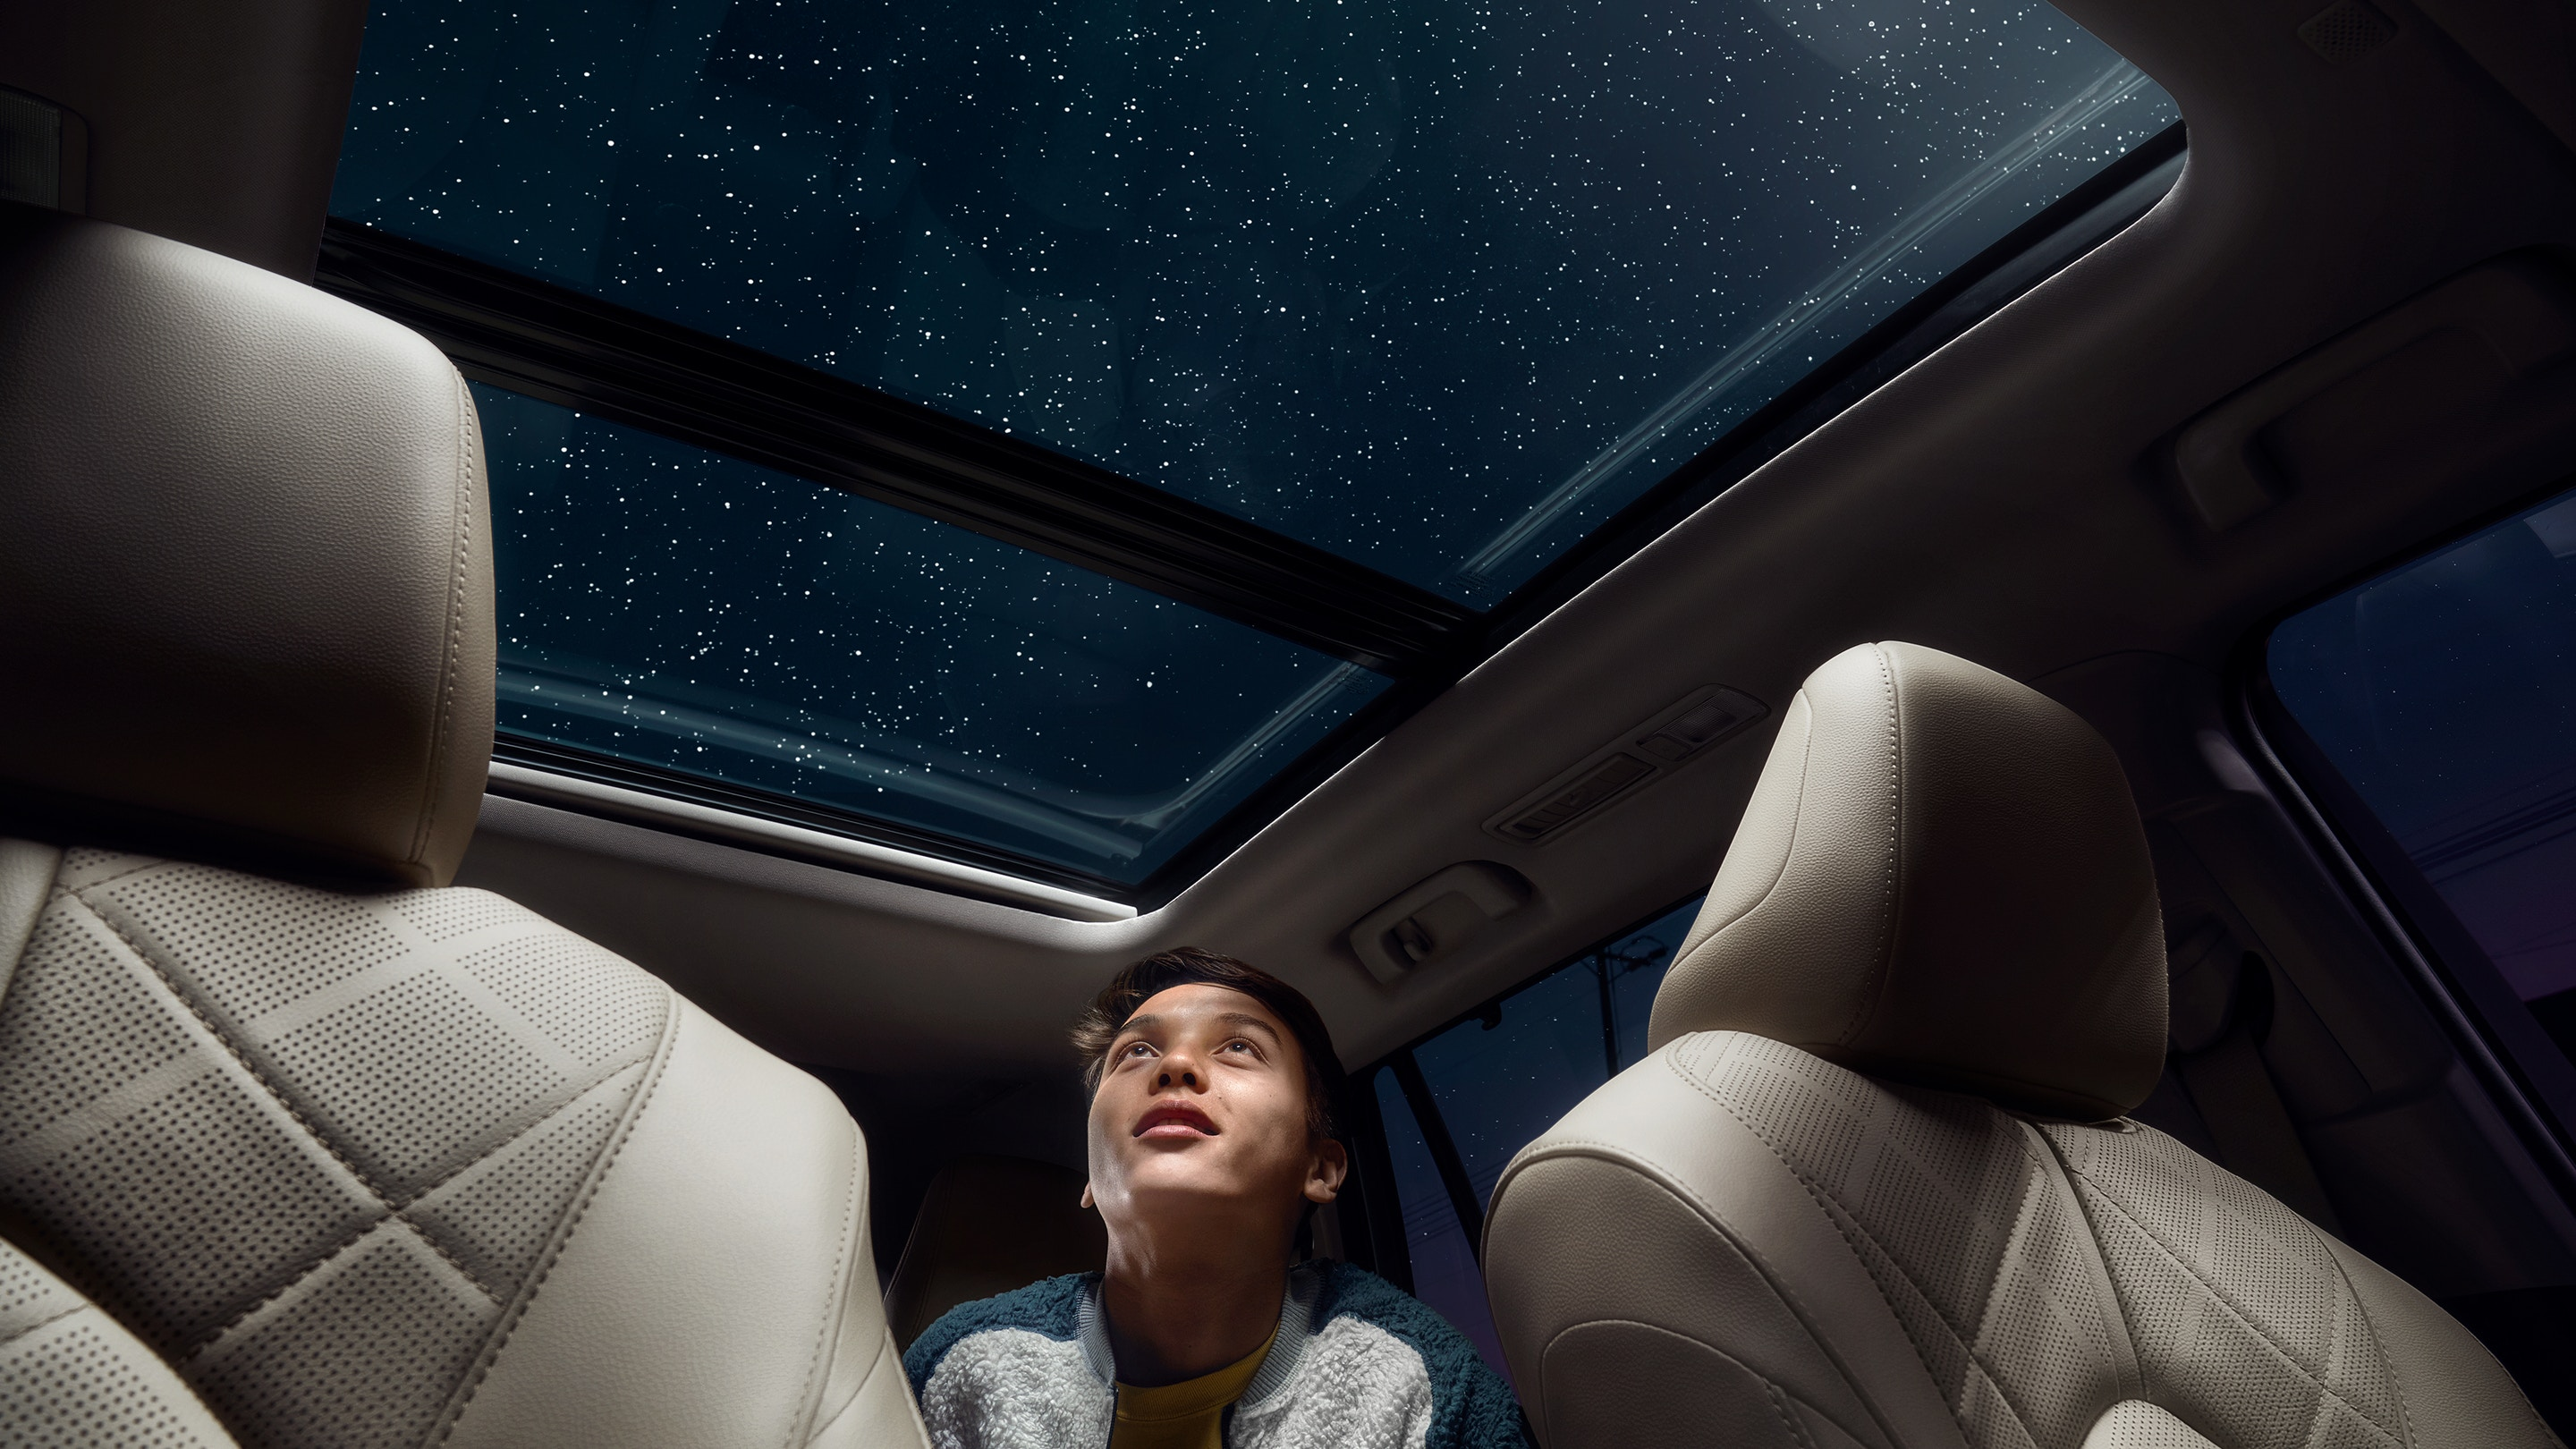 Moonroof in the 2020 Toyota Highlander